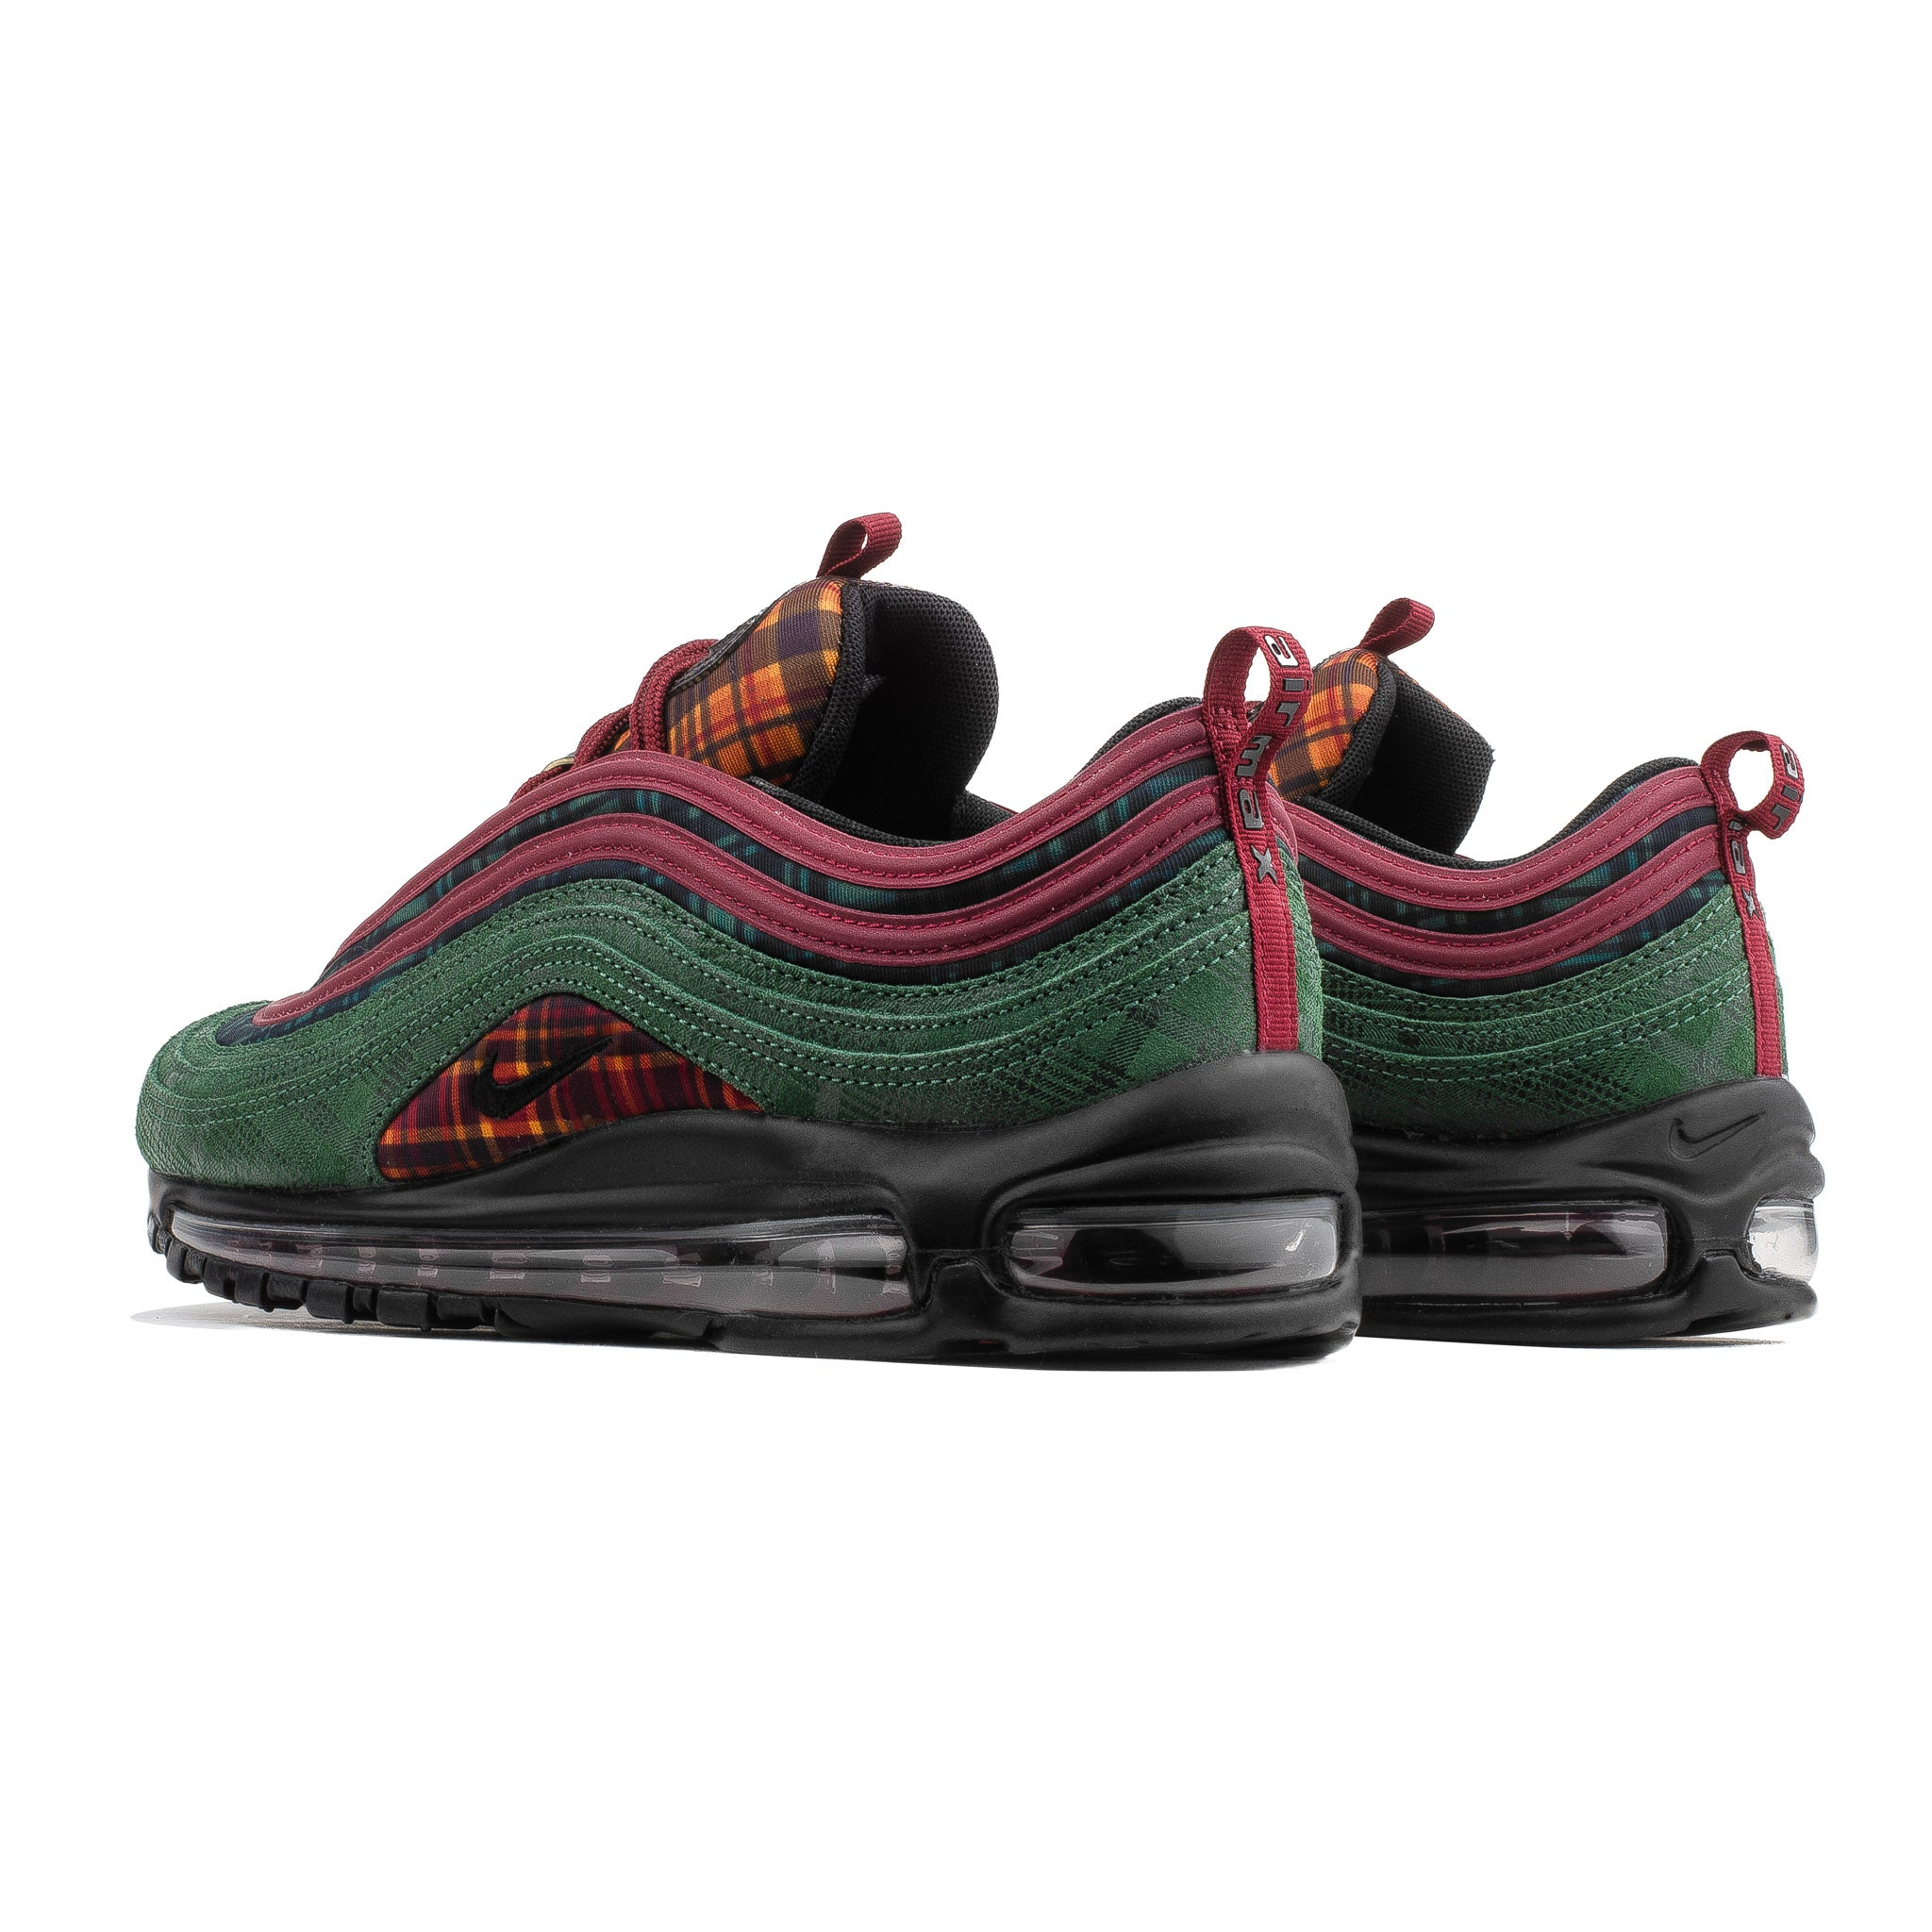 Nike Air Max 97 RFT GS BQ8437 002 Stadium Goods